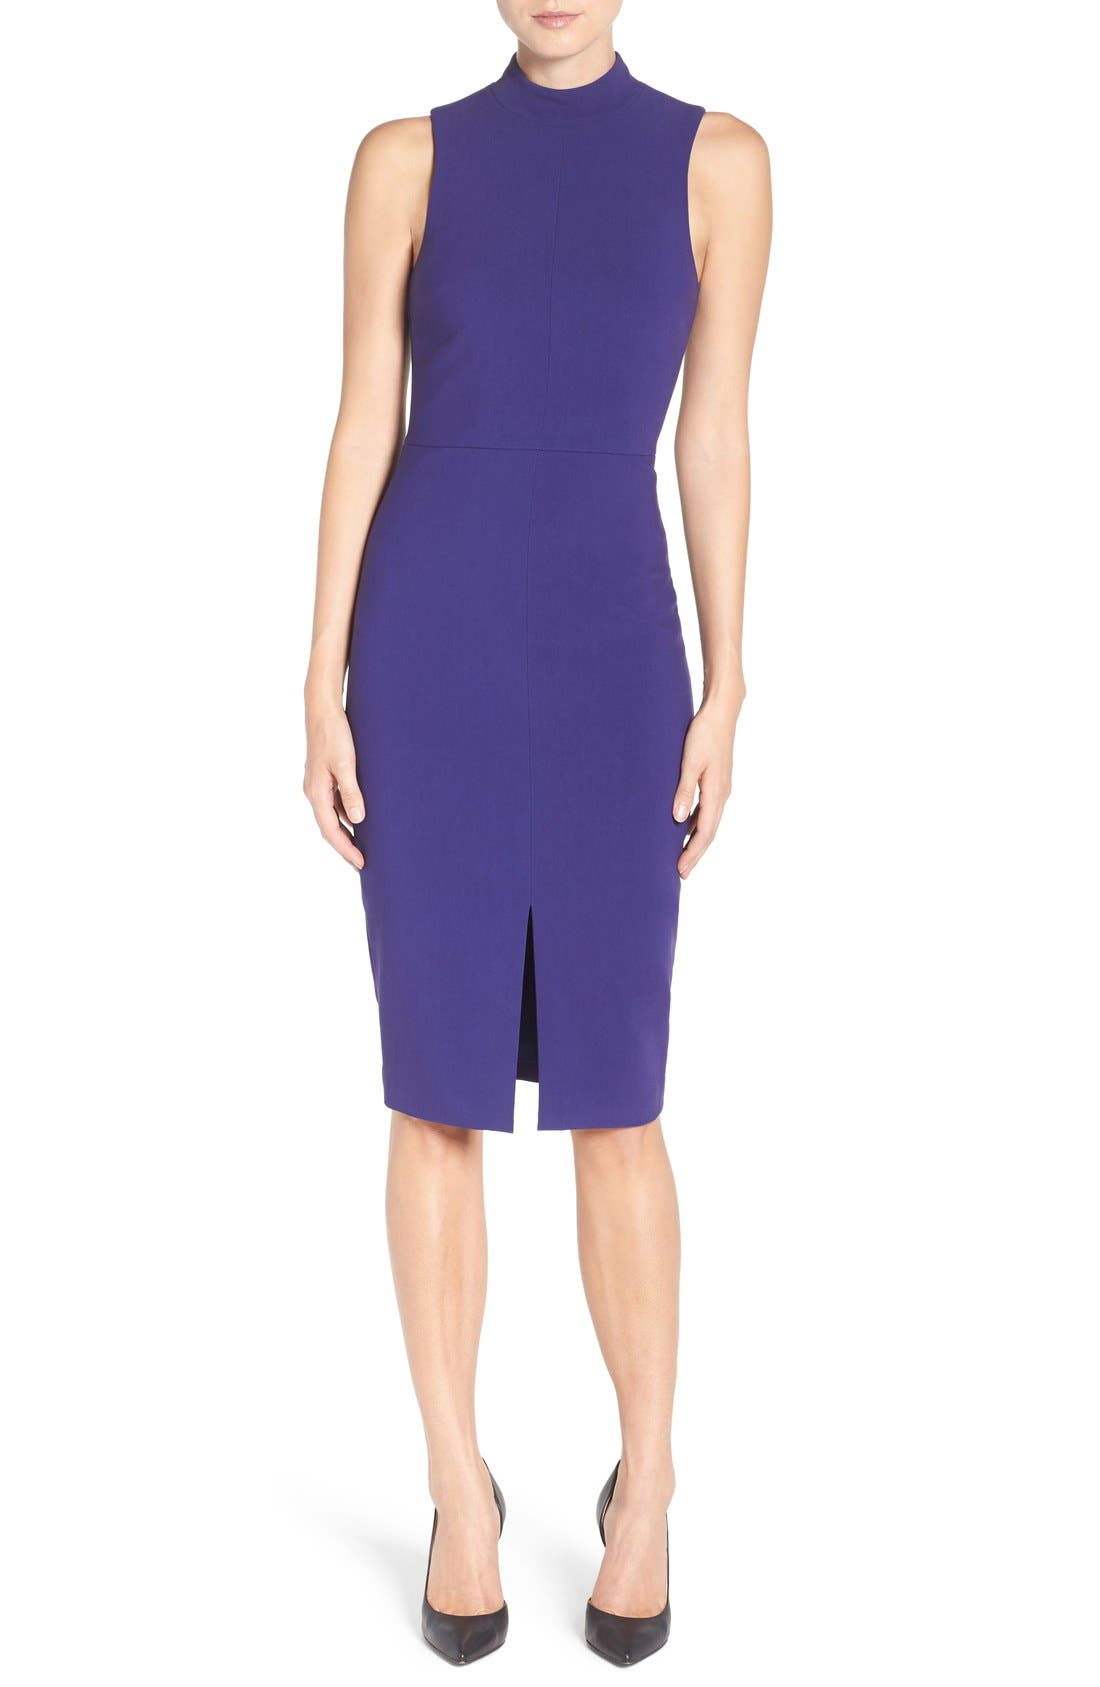 'Caldwell' Mock Neck Sheath Dress,                             Main thumbnail 1, color,                             533